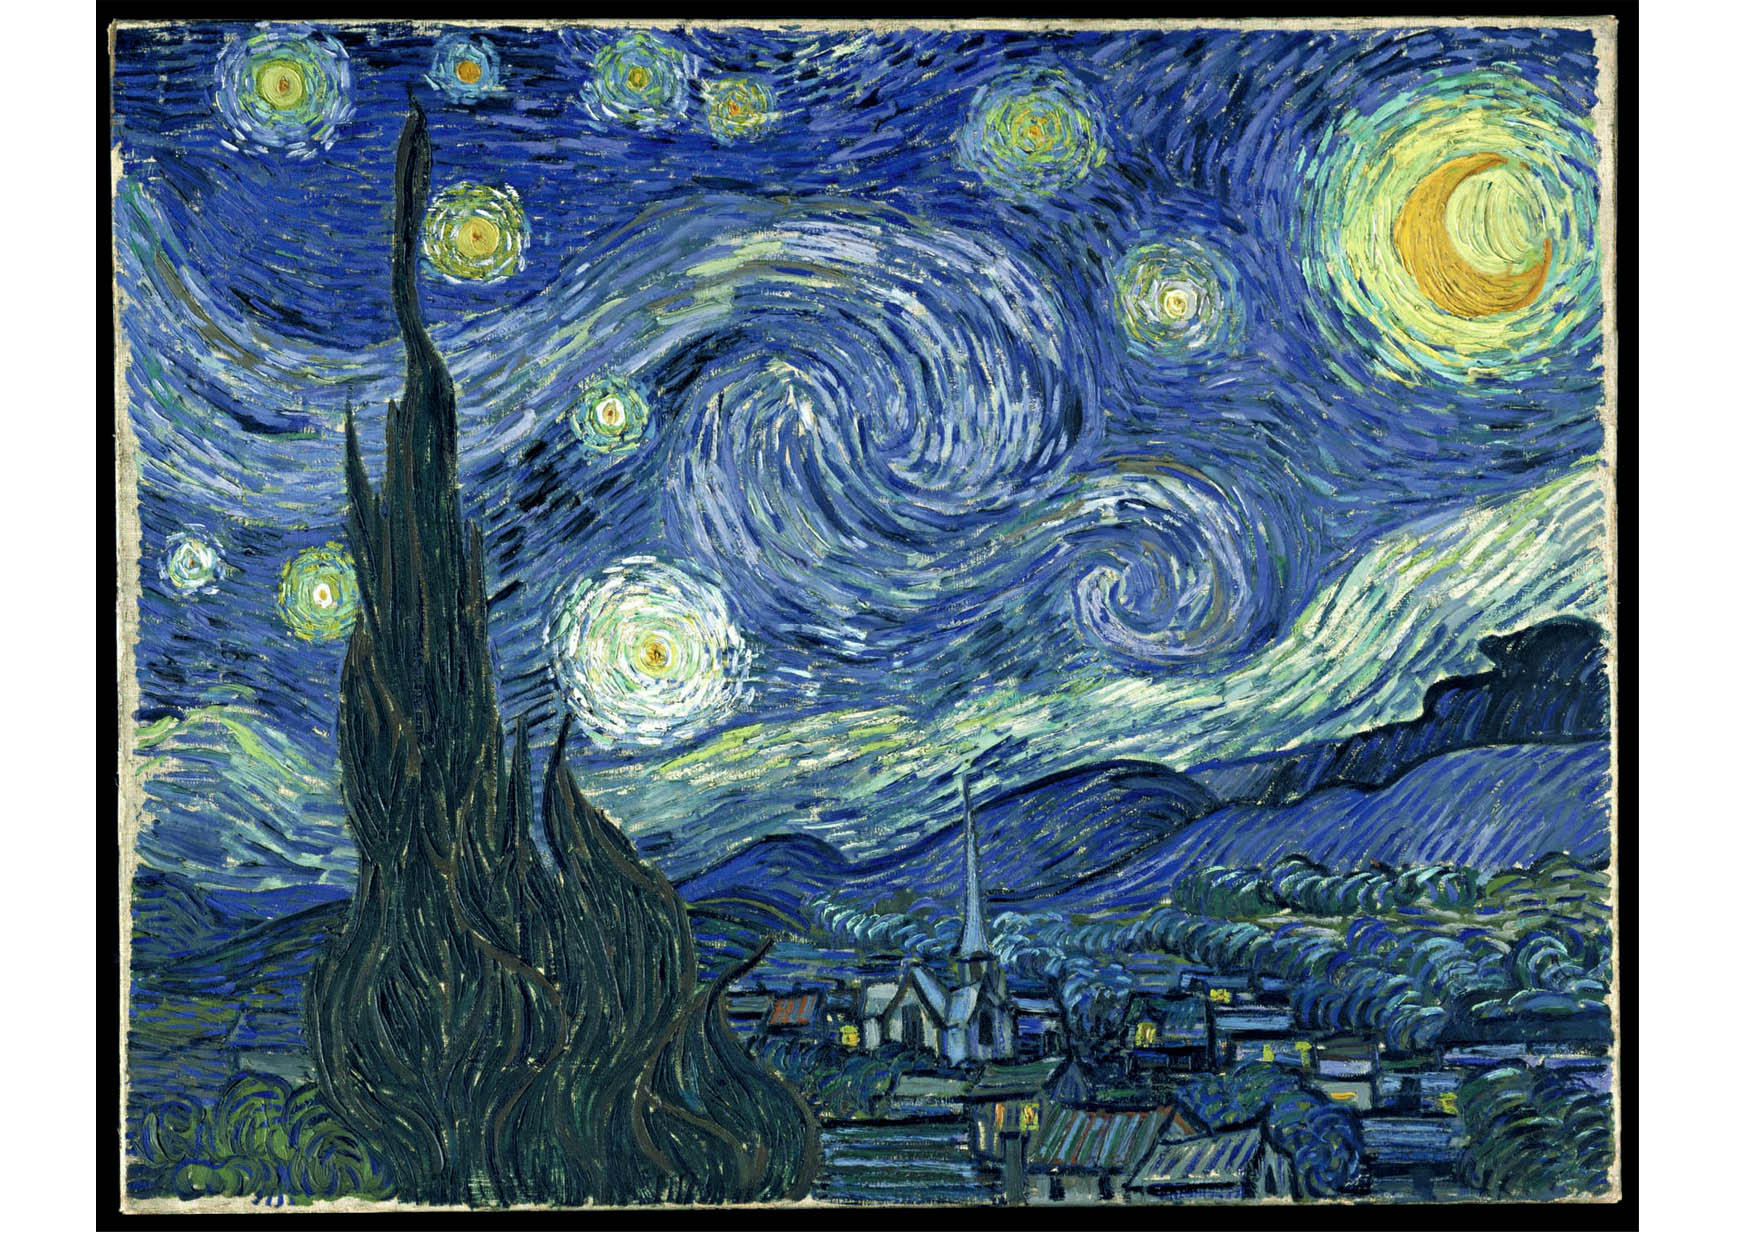 bilde starry night vincent van gogh bil 14768. Black Bedroom Furniture Sets. Home Design Ideas